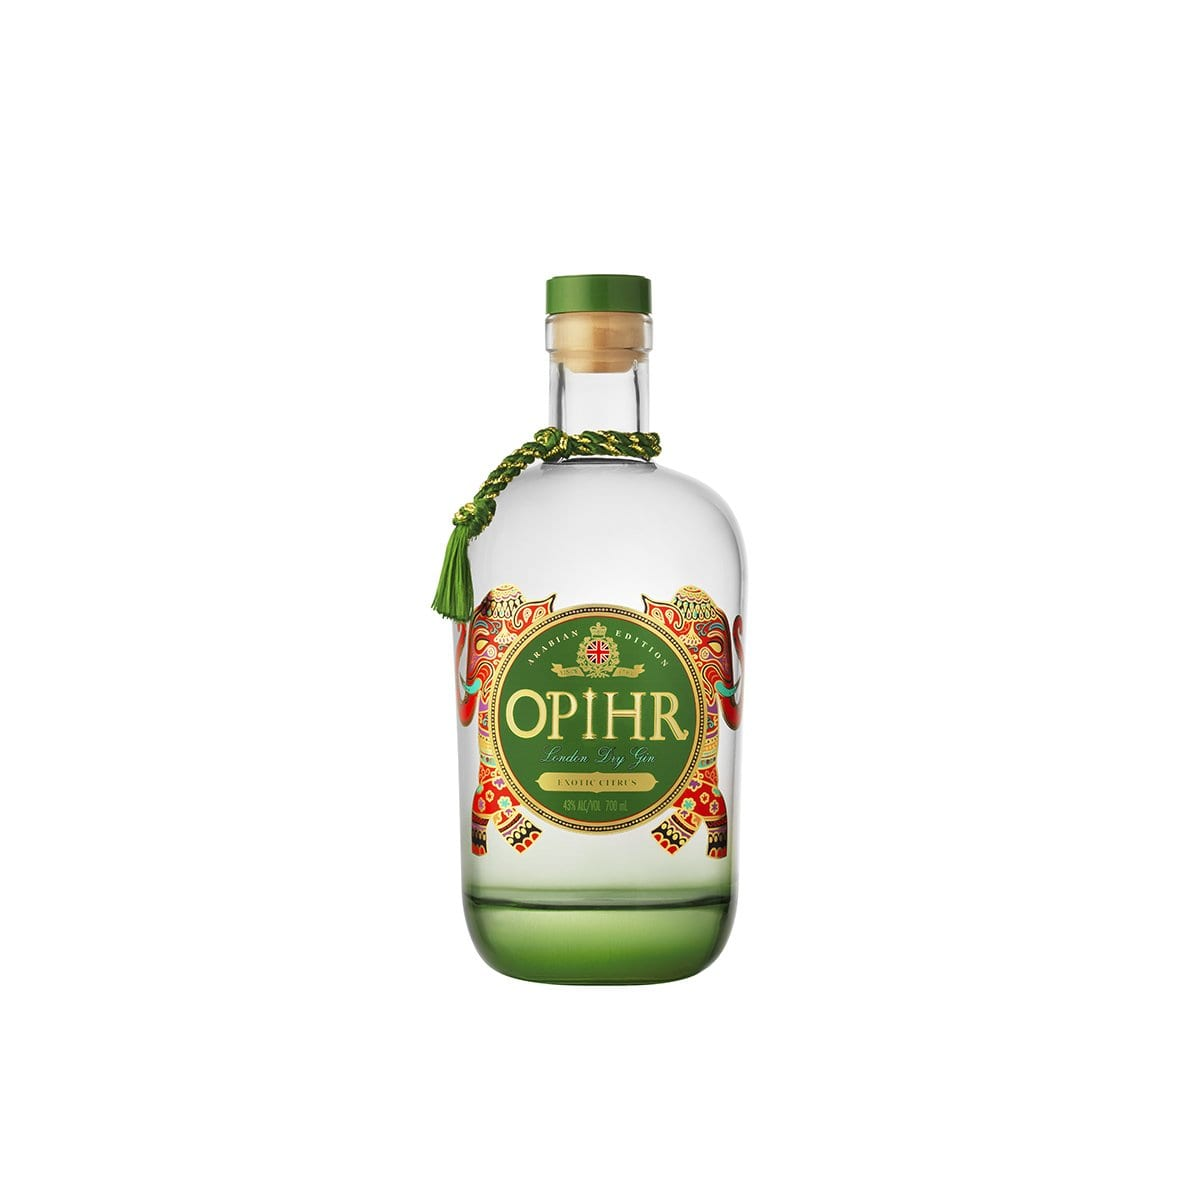 OPIHR Arabian Edition Gin